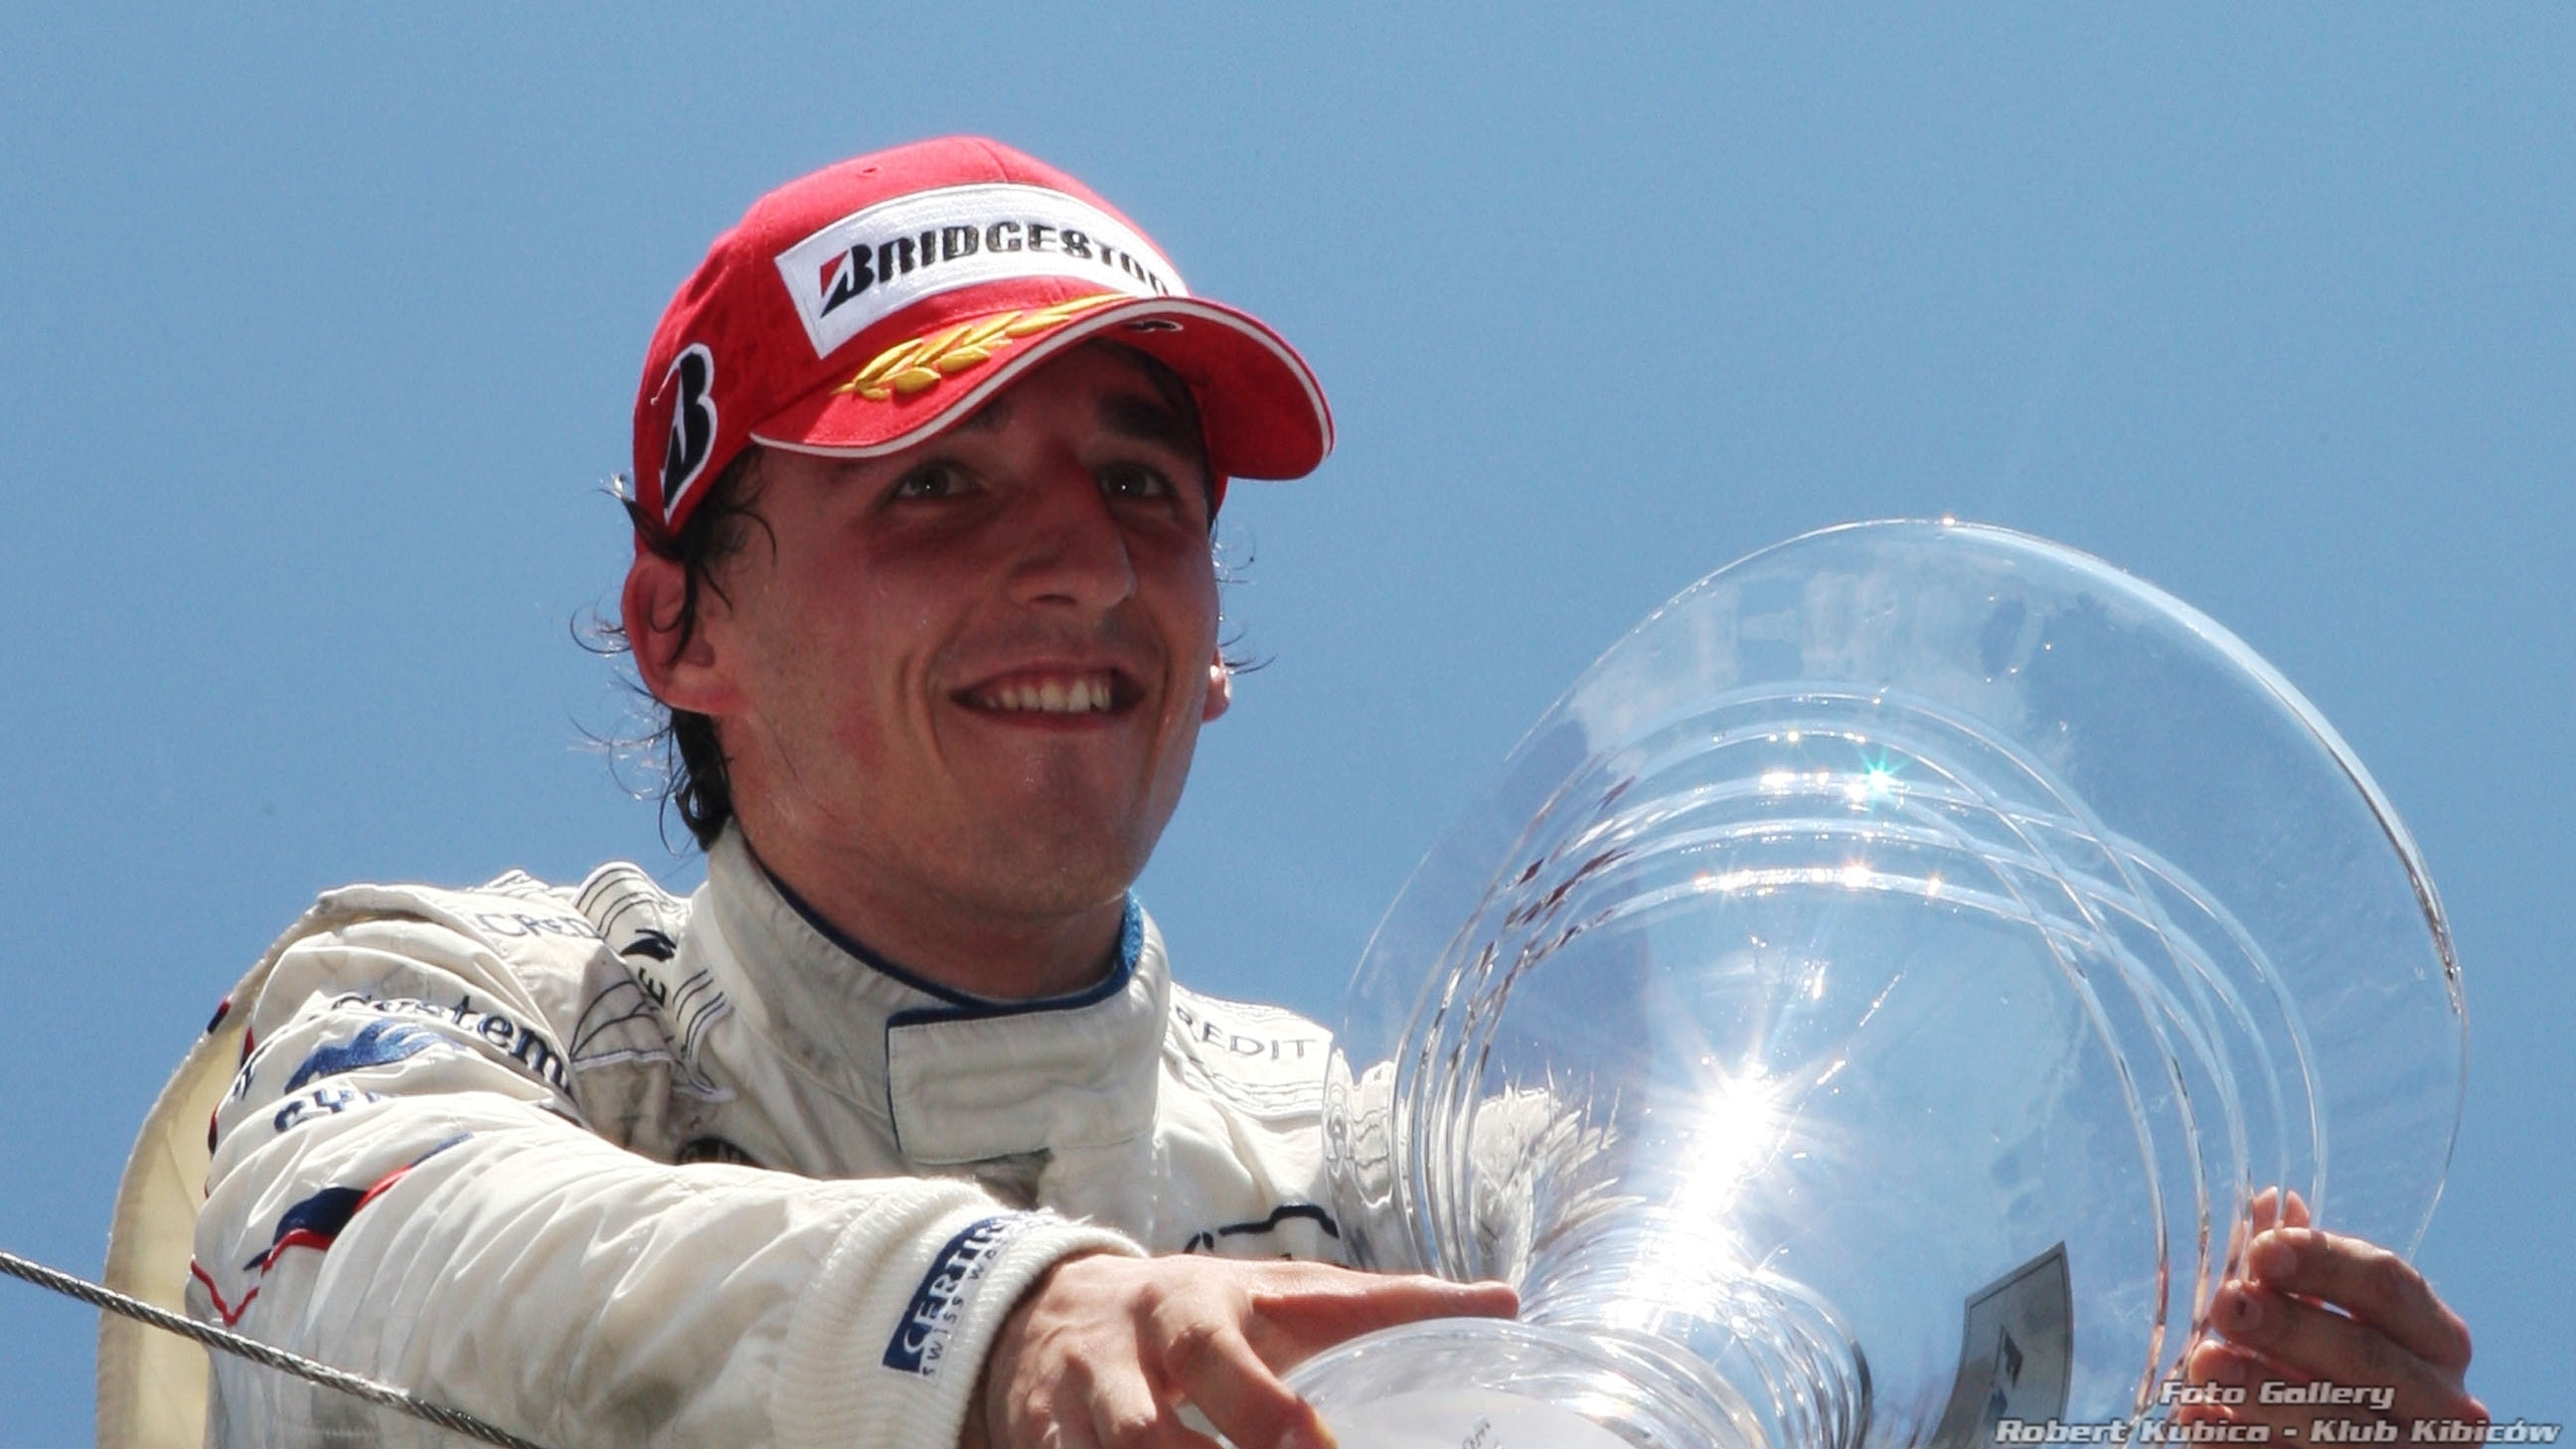 Robert Kubica Trofeum GP Canadian GP 2008